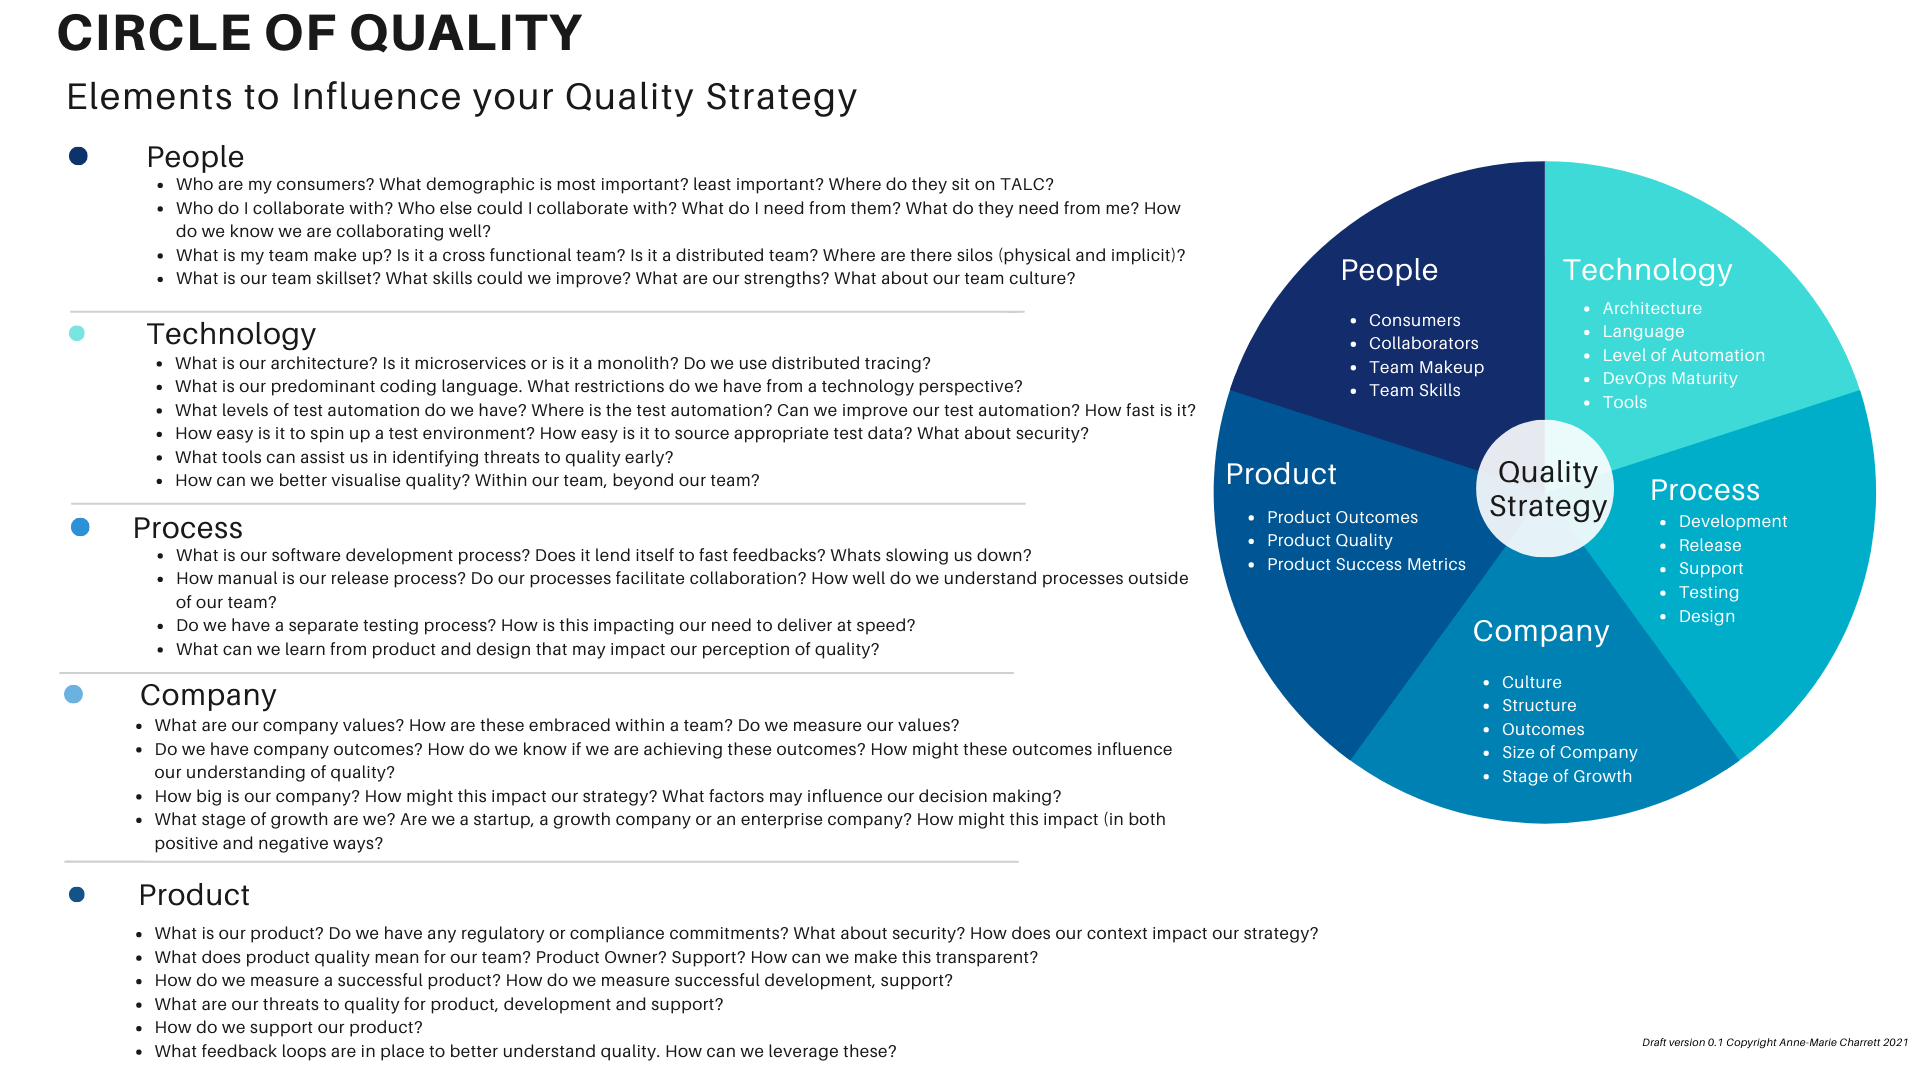 Explaining the Circle of Quality - What do you think?